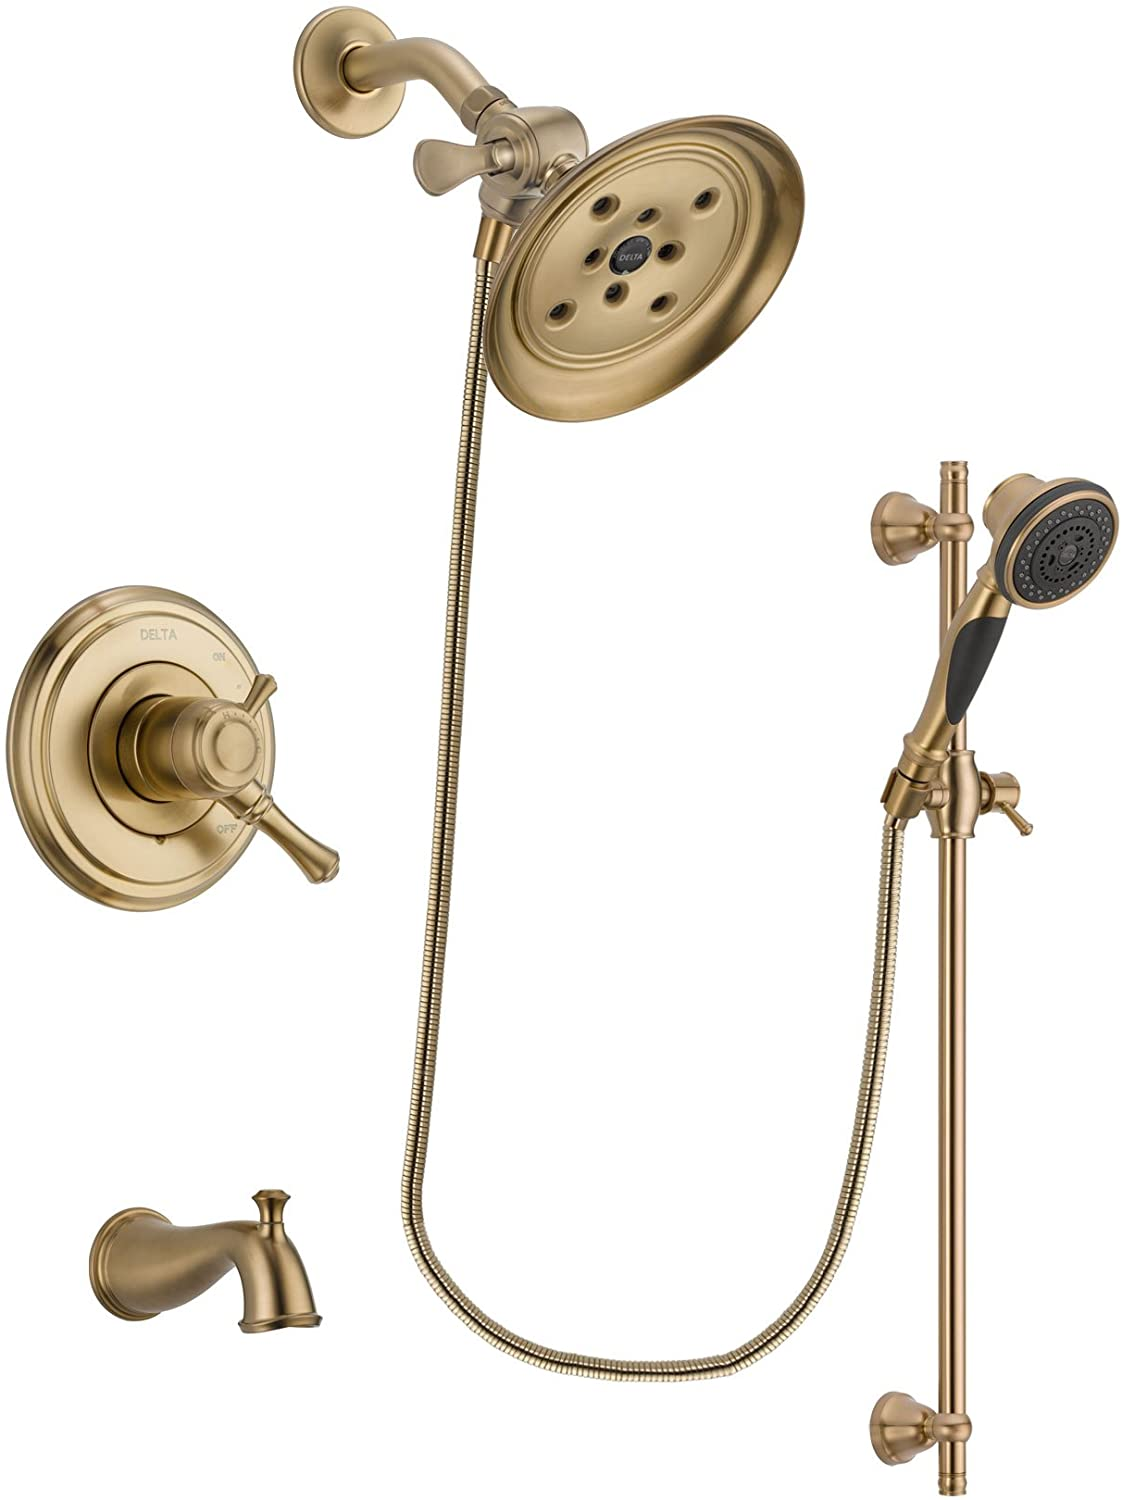 Delta Cassidy Champagne Bronze Dual Control Tub and Shower Faucet System with Large Rain Shower Head and Personal Handheld Shower Spray with Slide Bar Includes Rough-in Valve and Tub Spout DSP3601V